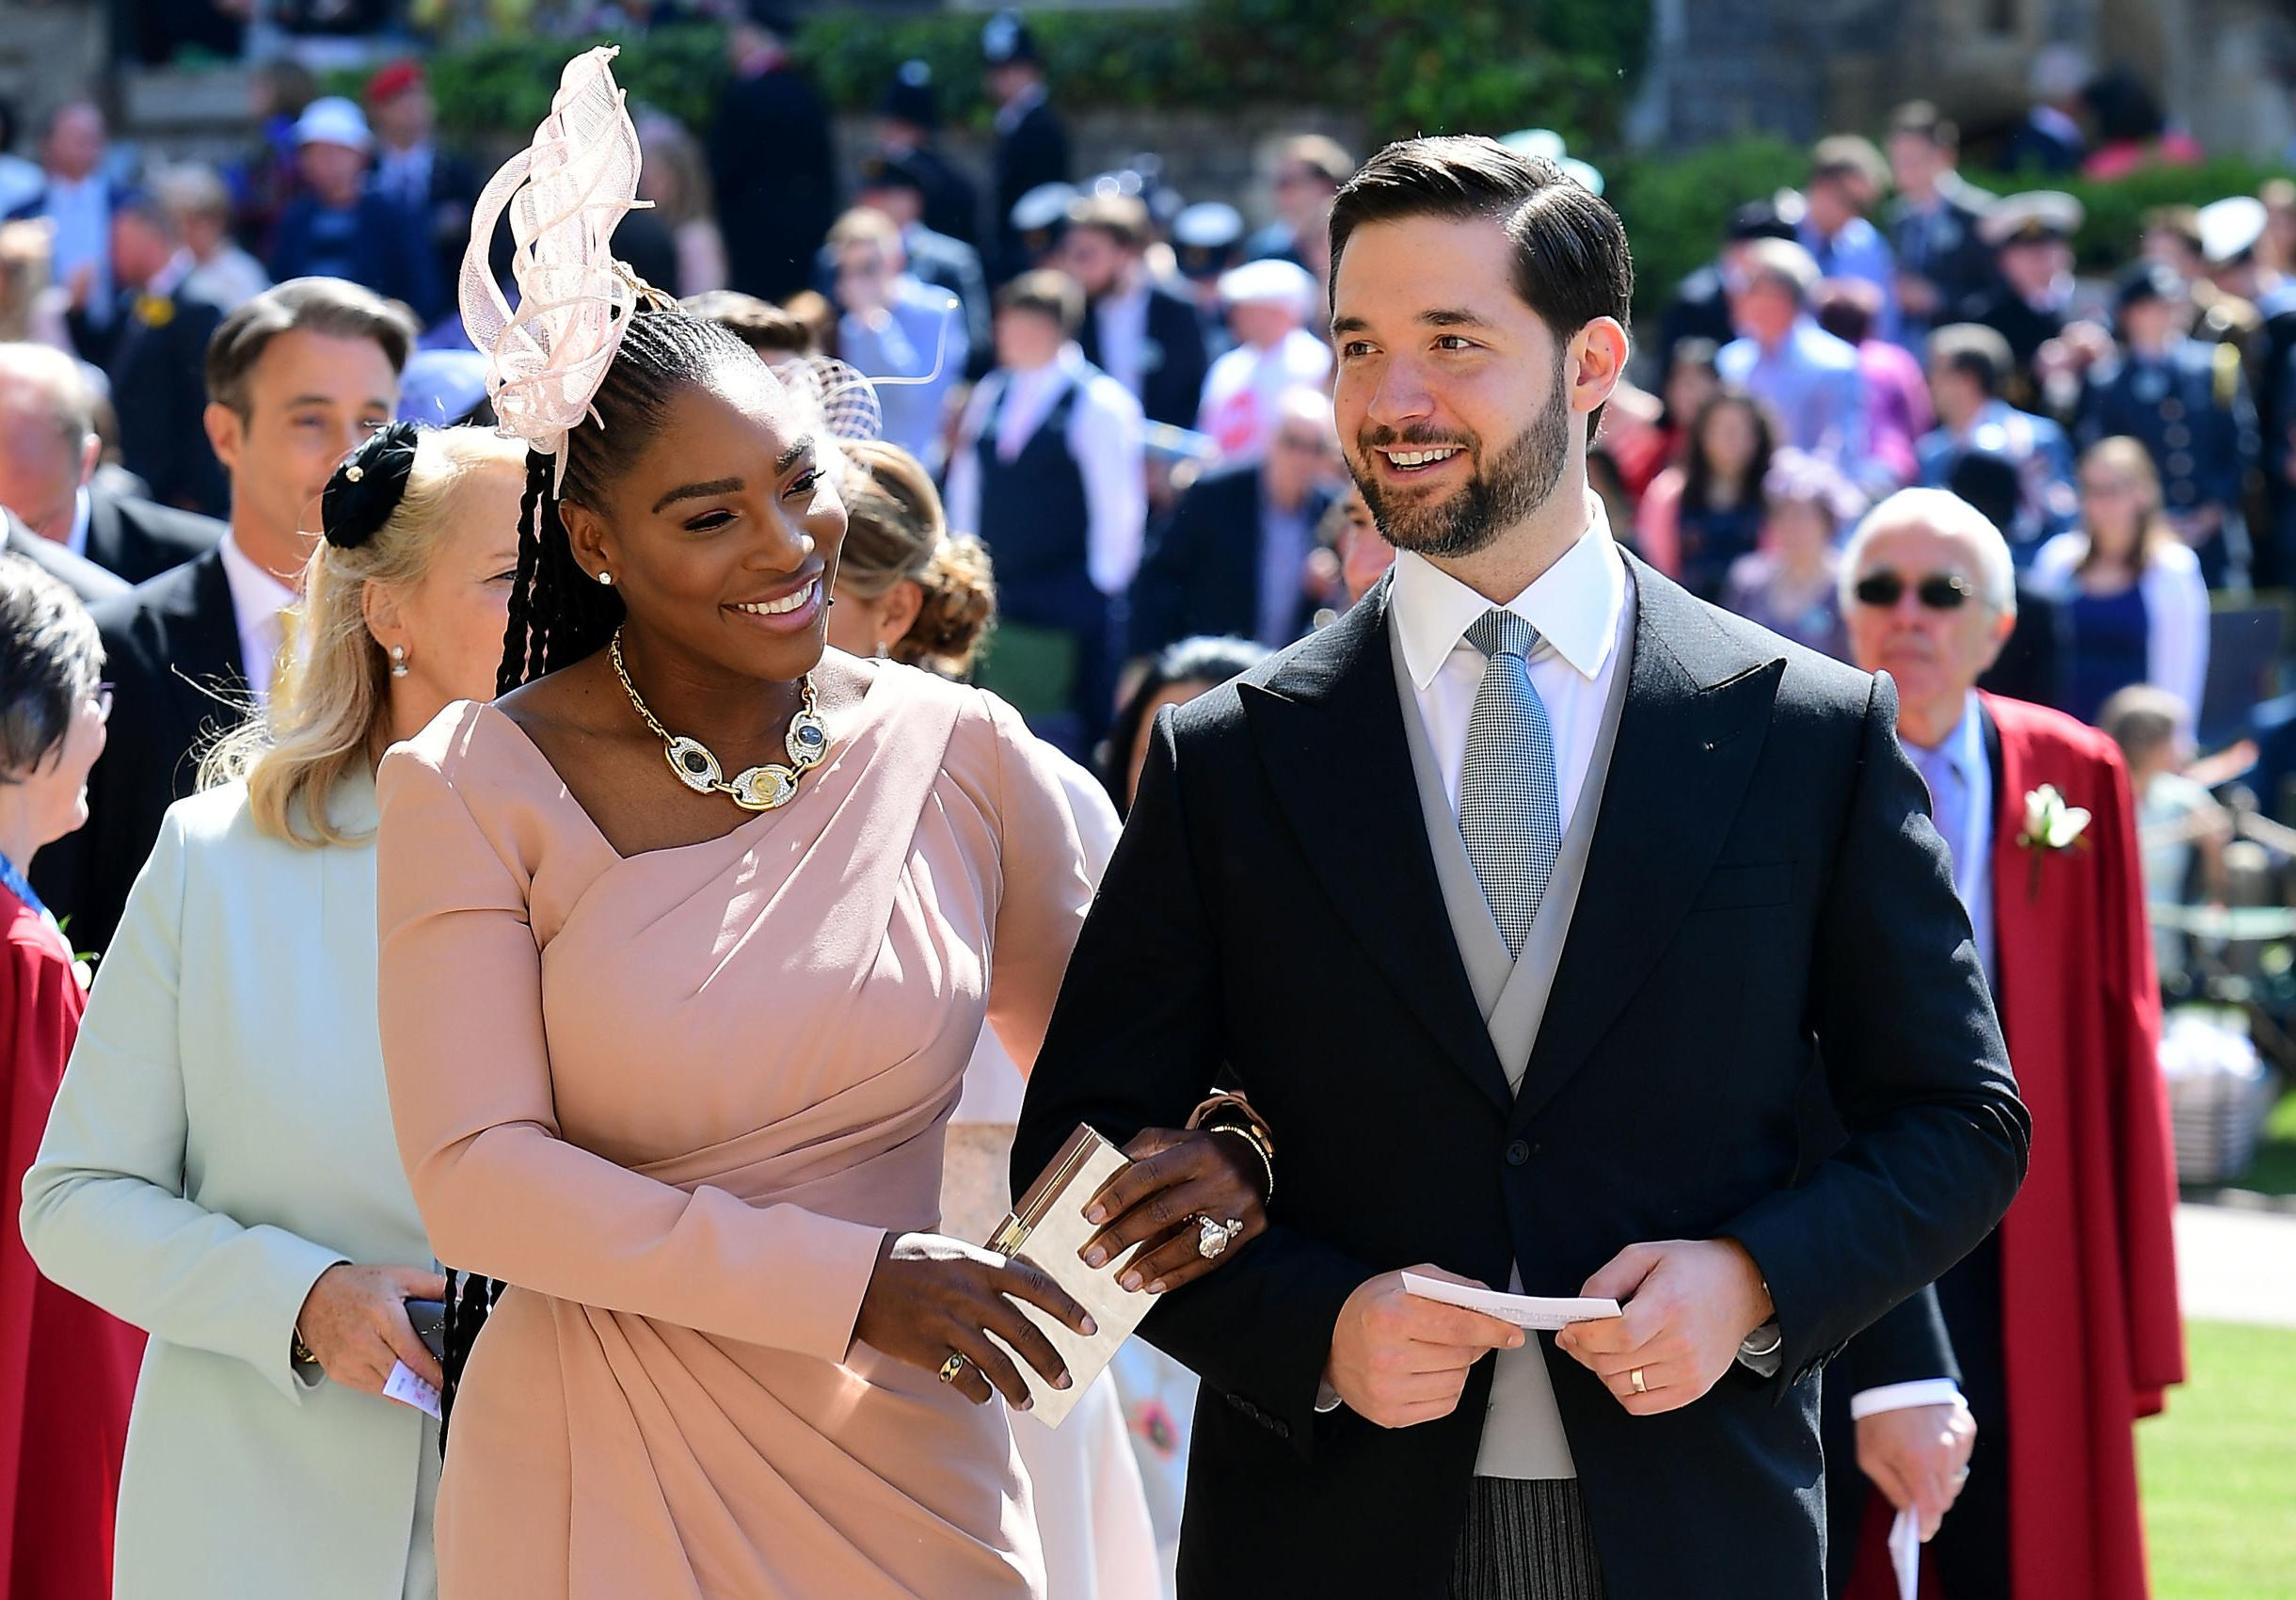 Serena Williams and her husband Alexis Ohanian arrive for the wedding ceremony of Britain's Prince Harry, Duke of Sussex and US actress Meghan Markle at St George's Chapel, Windsor Castle, in Windsor, on May 19, 2018. (Photo by Ian West / POOL / AFP)        (Photo credit should read IAN WEST/AFP/Getty Images)